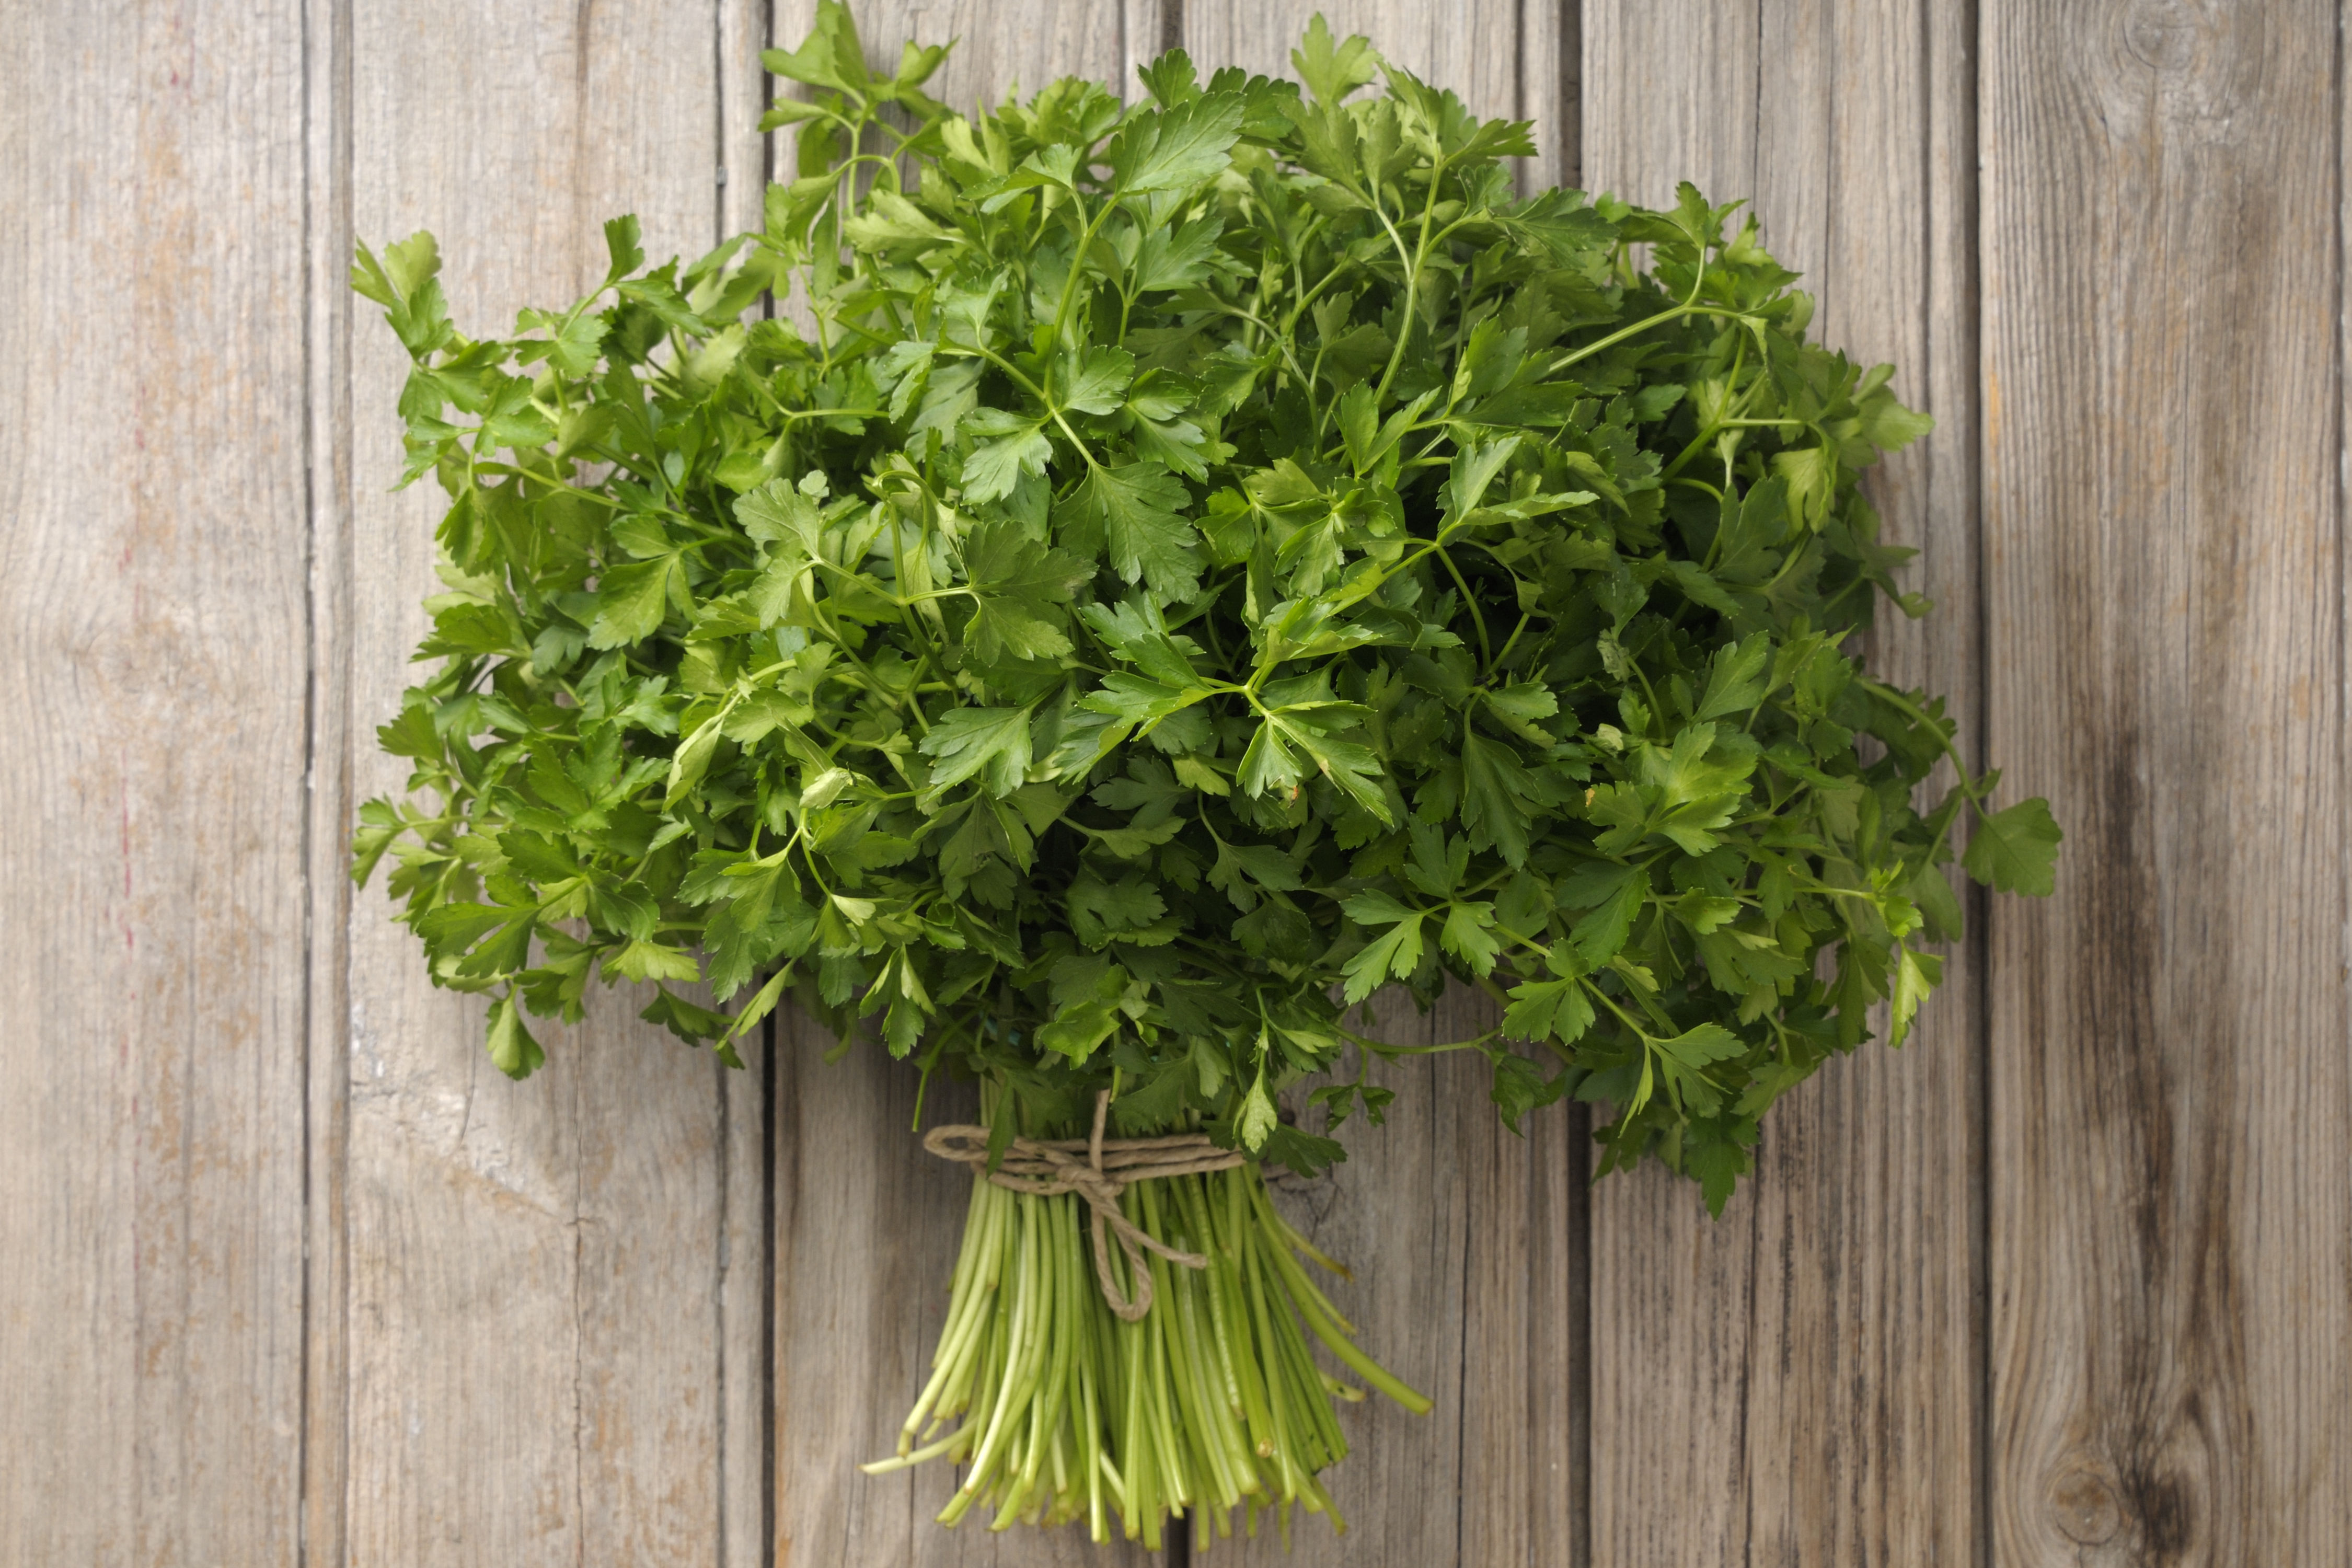 The Best Way To Store Fresh Herbs